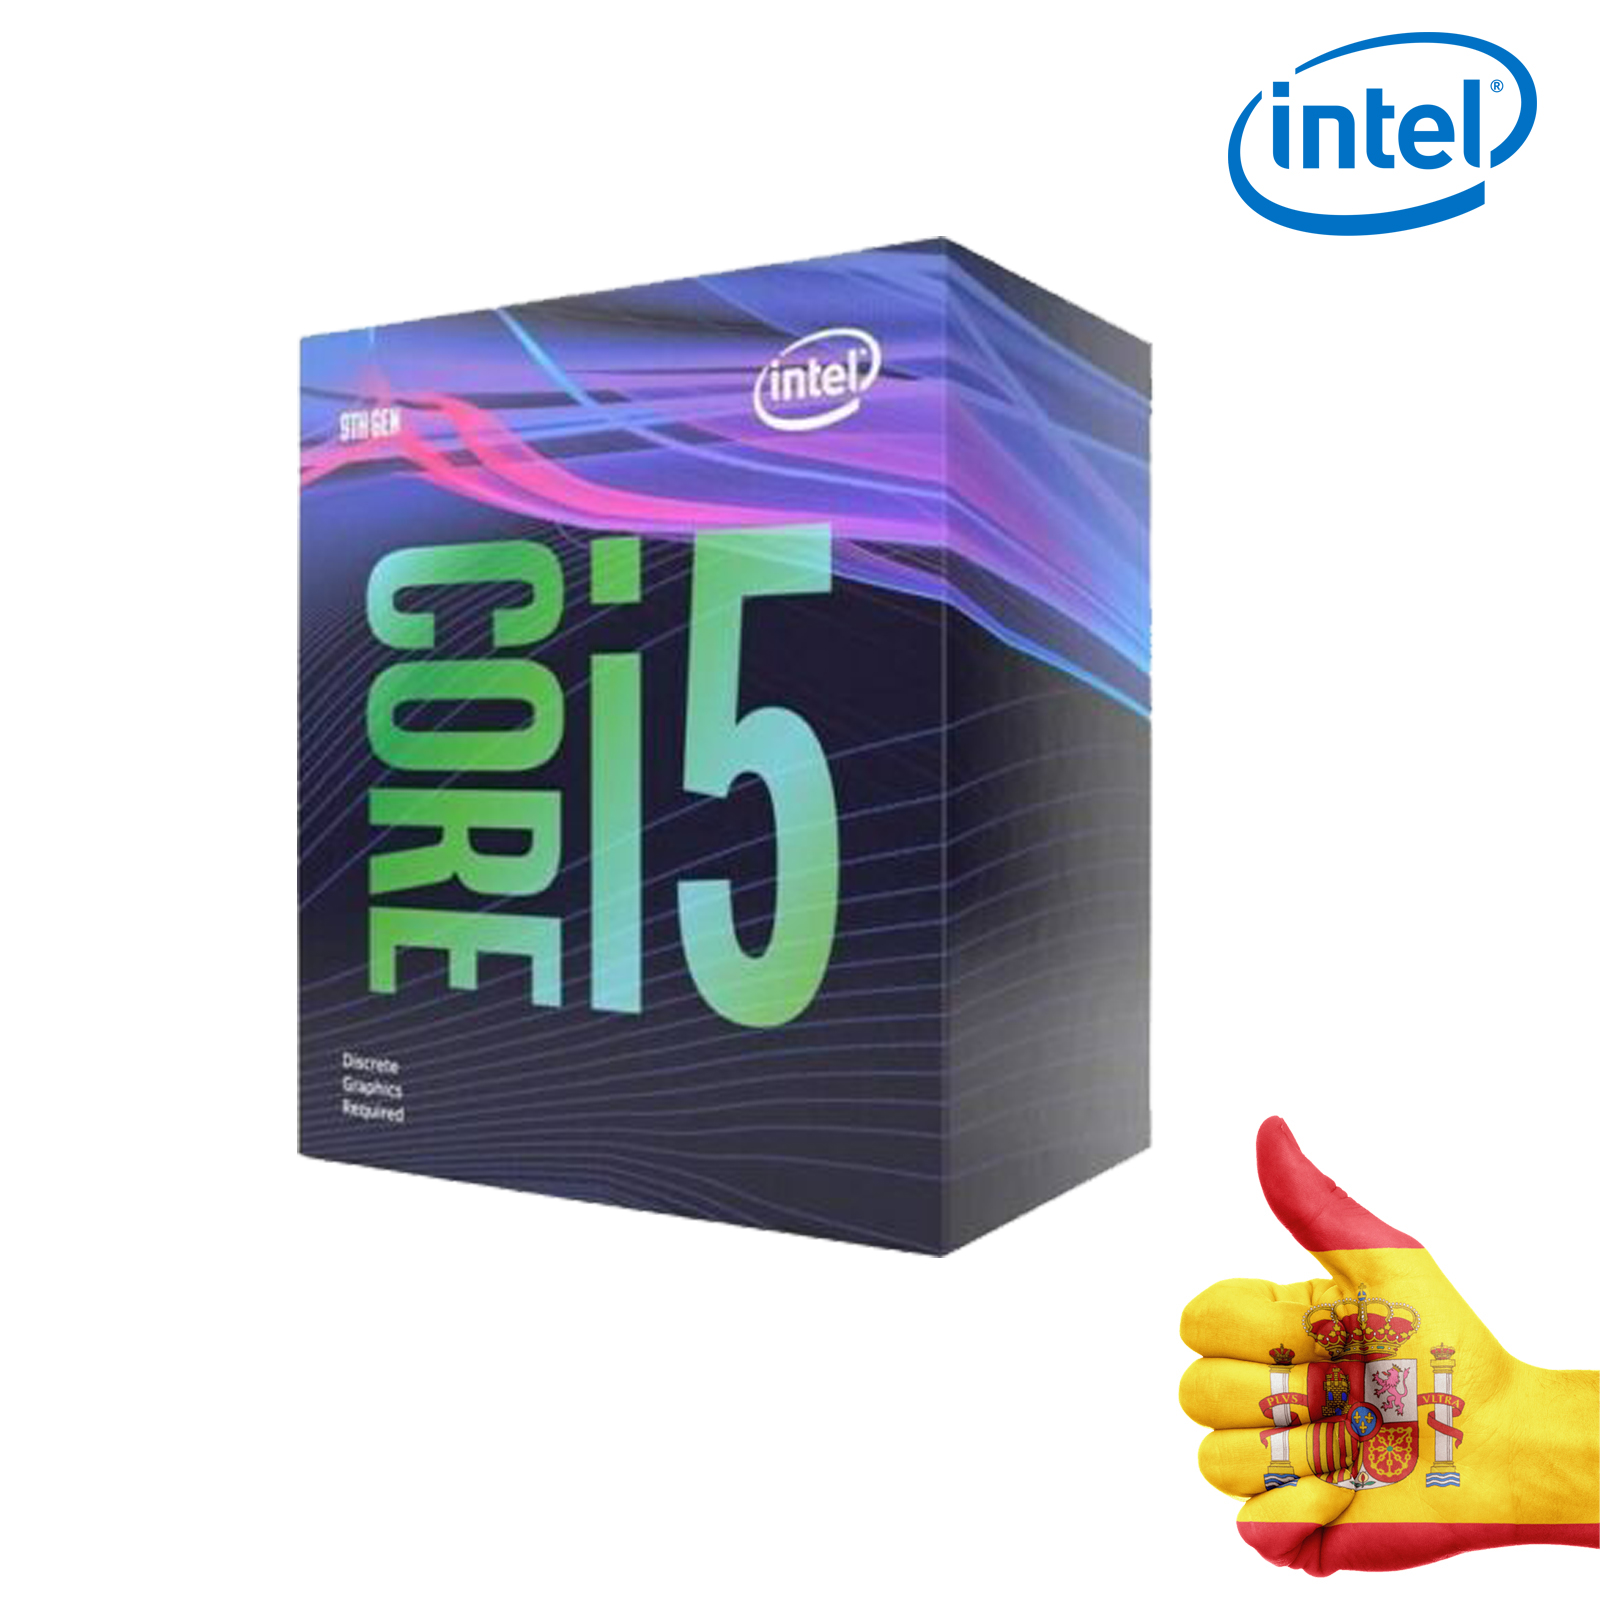 ORIGINAL <font><b>Intel</b></font> Core i5-9400F Socket LGA <font><b>1151</b></font> 2,9 GHz Processor image